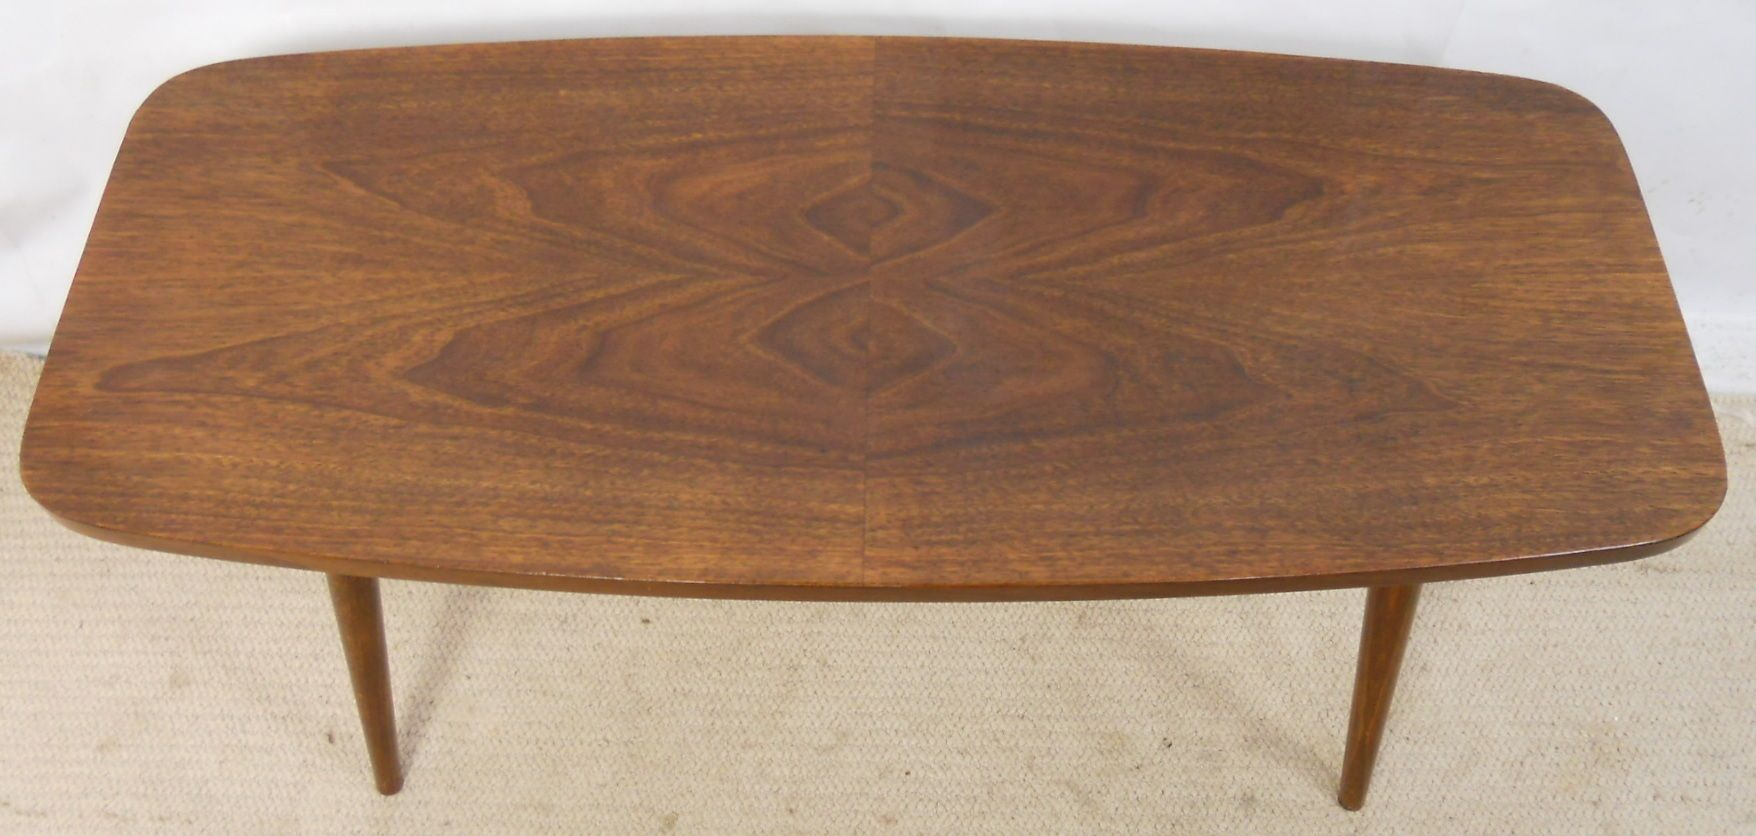 Retro Walnut Finish Long Coffee Table Sold